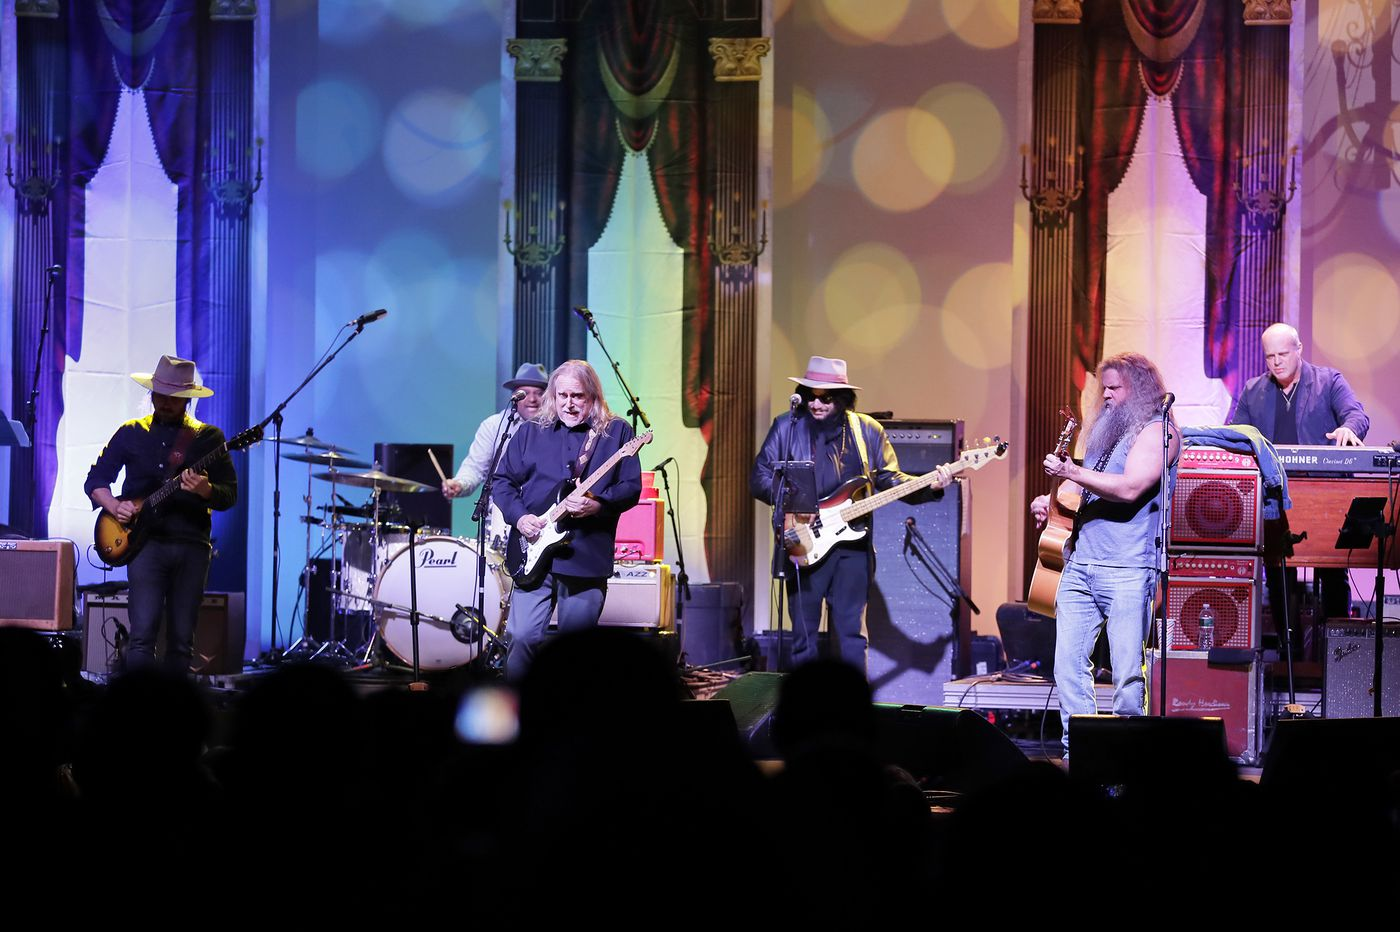 'The Last Waltz' tour at the Tower: Celebrating The Band, with an all-star band